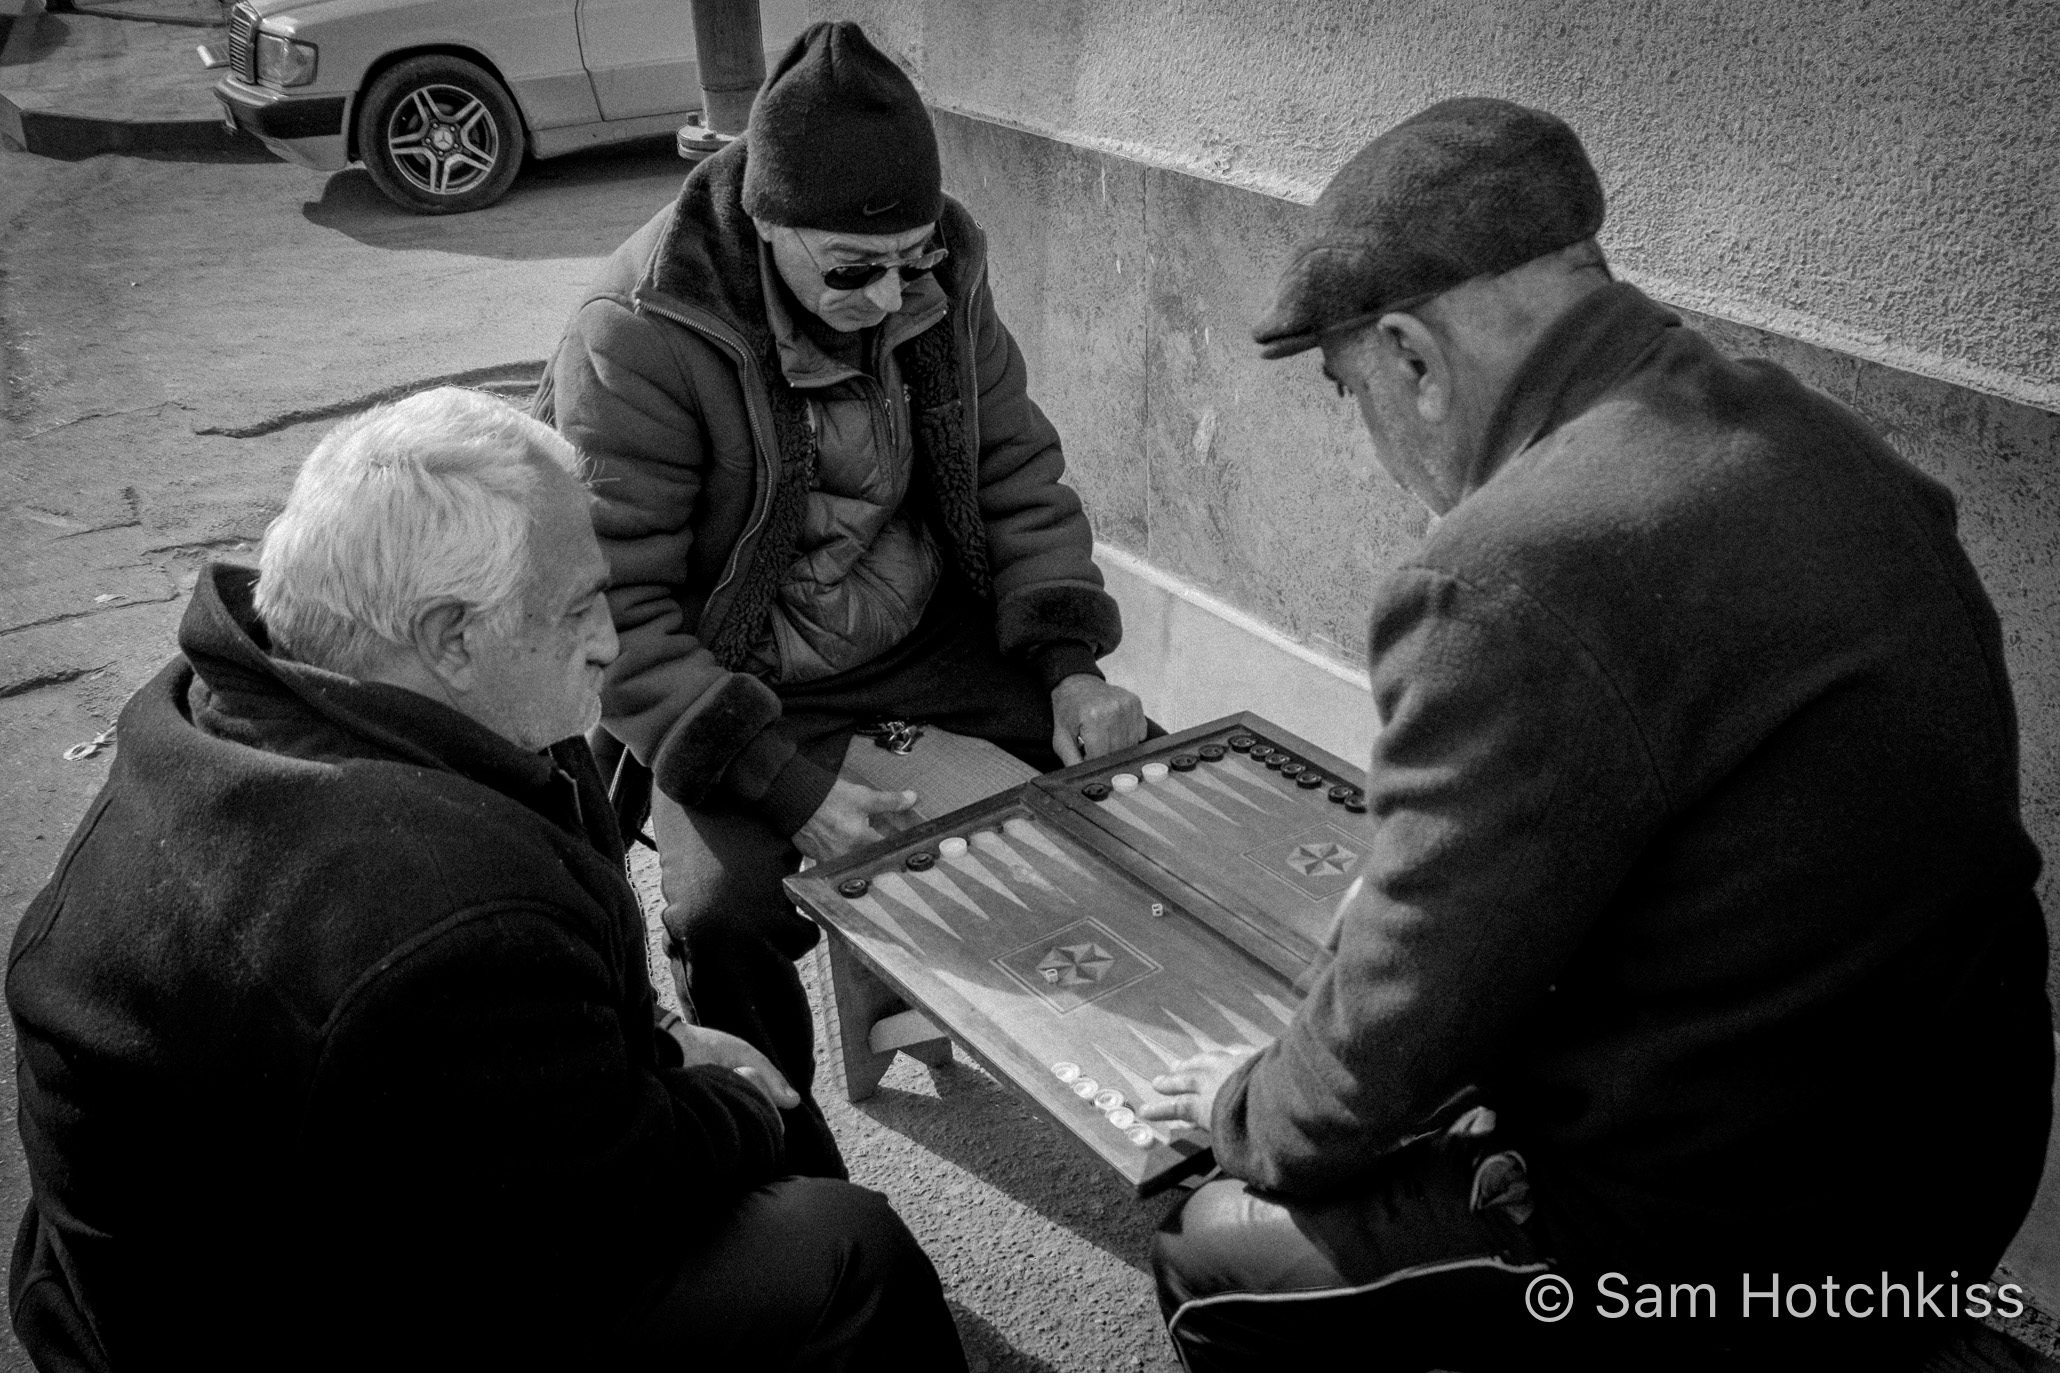 Sidewalk Backgammon